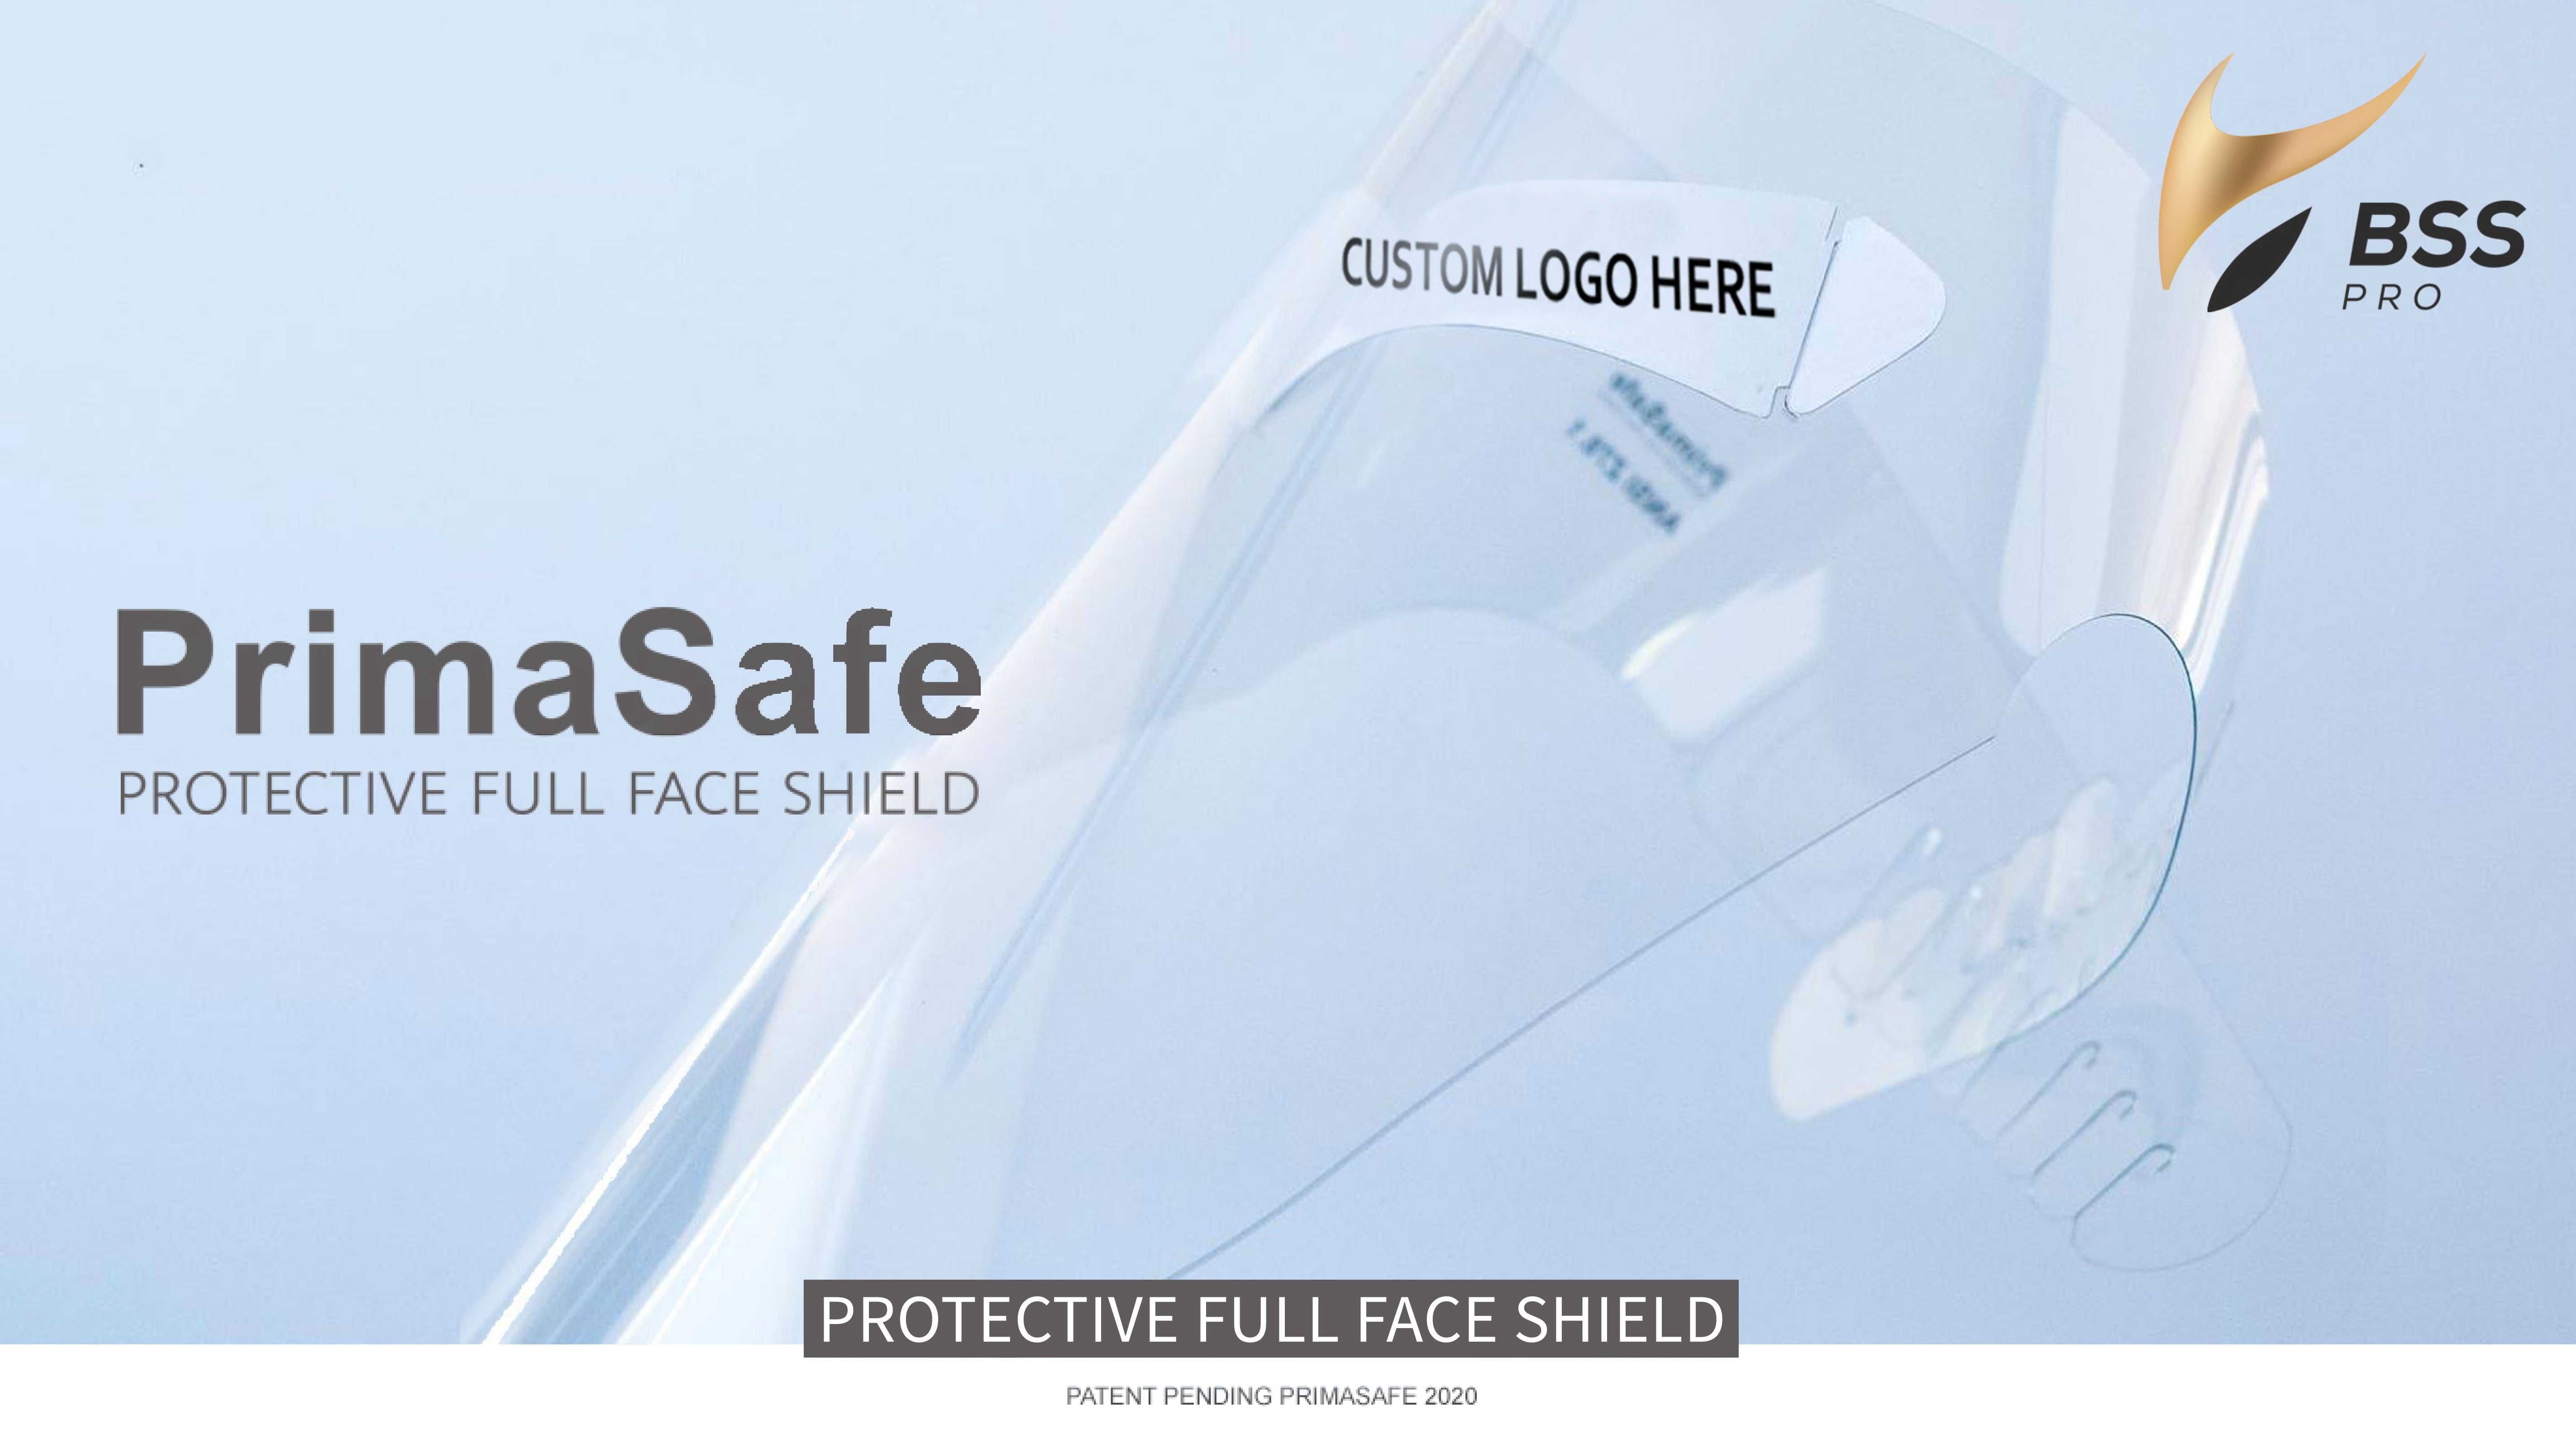 PrimaSafe Protective Full Face Shield